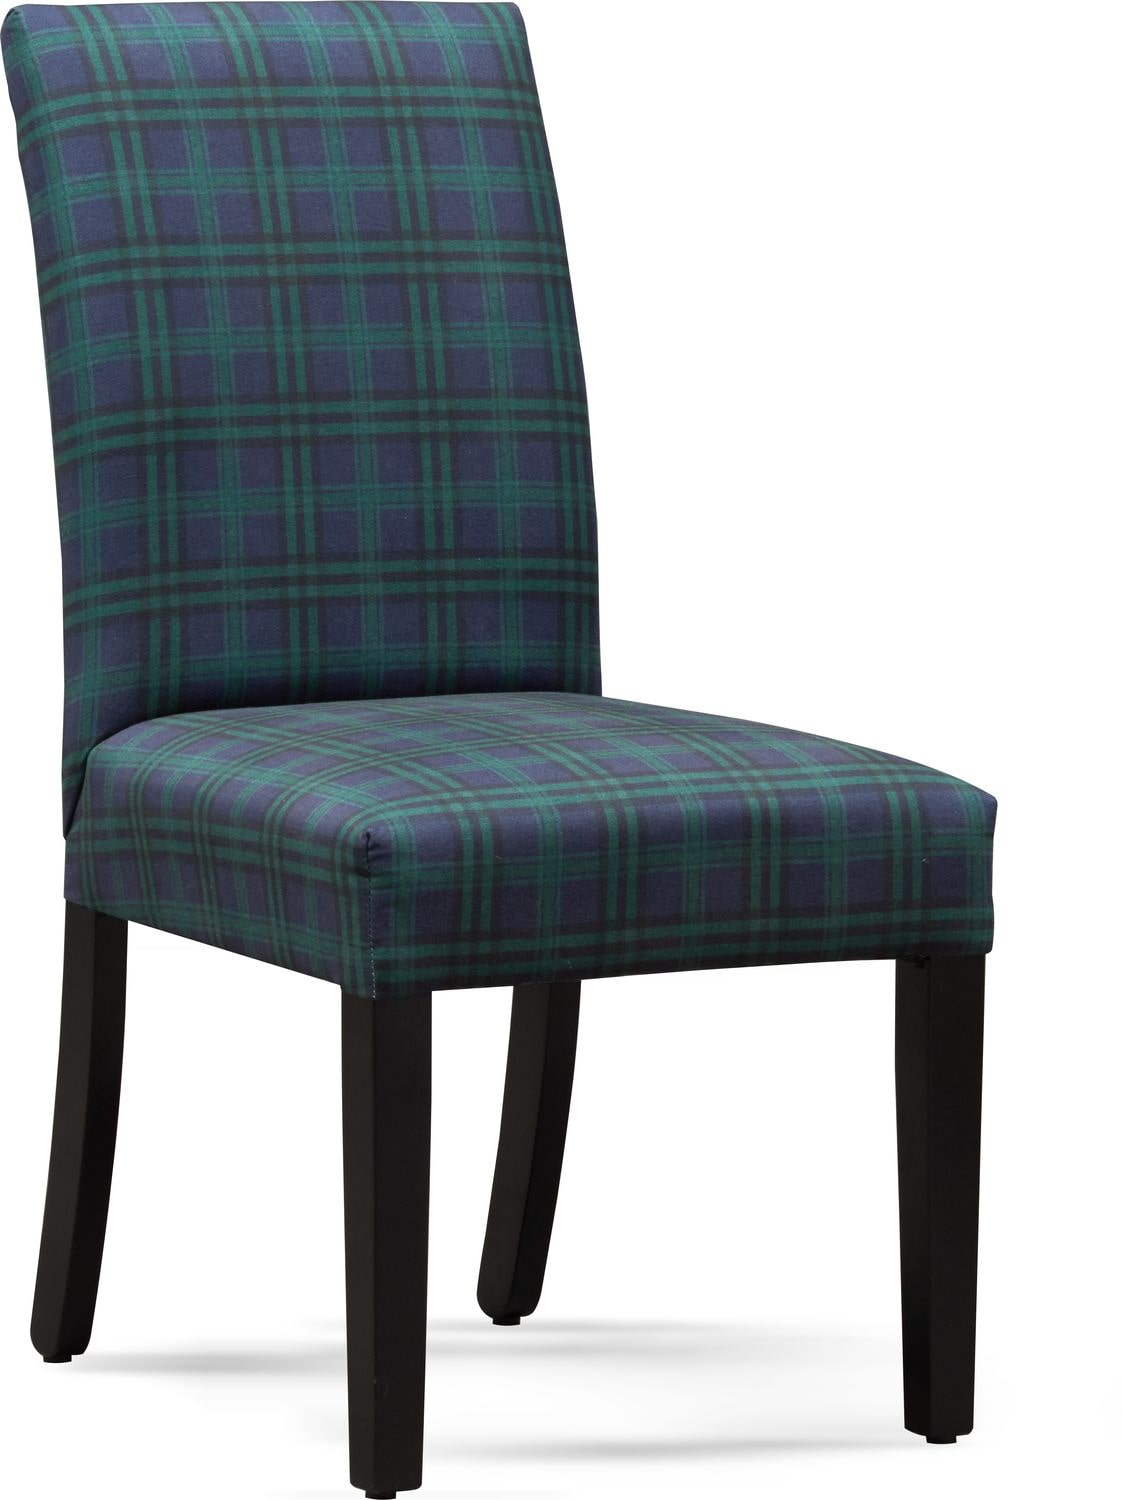 Dining Room Furniture - Adler Upholstered Side Chair